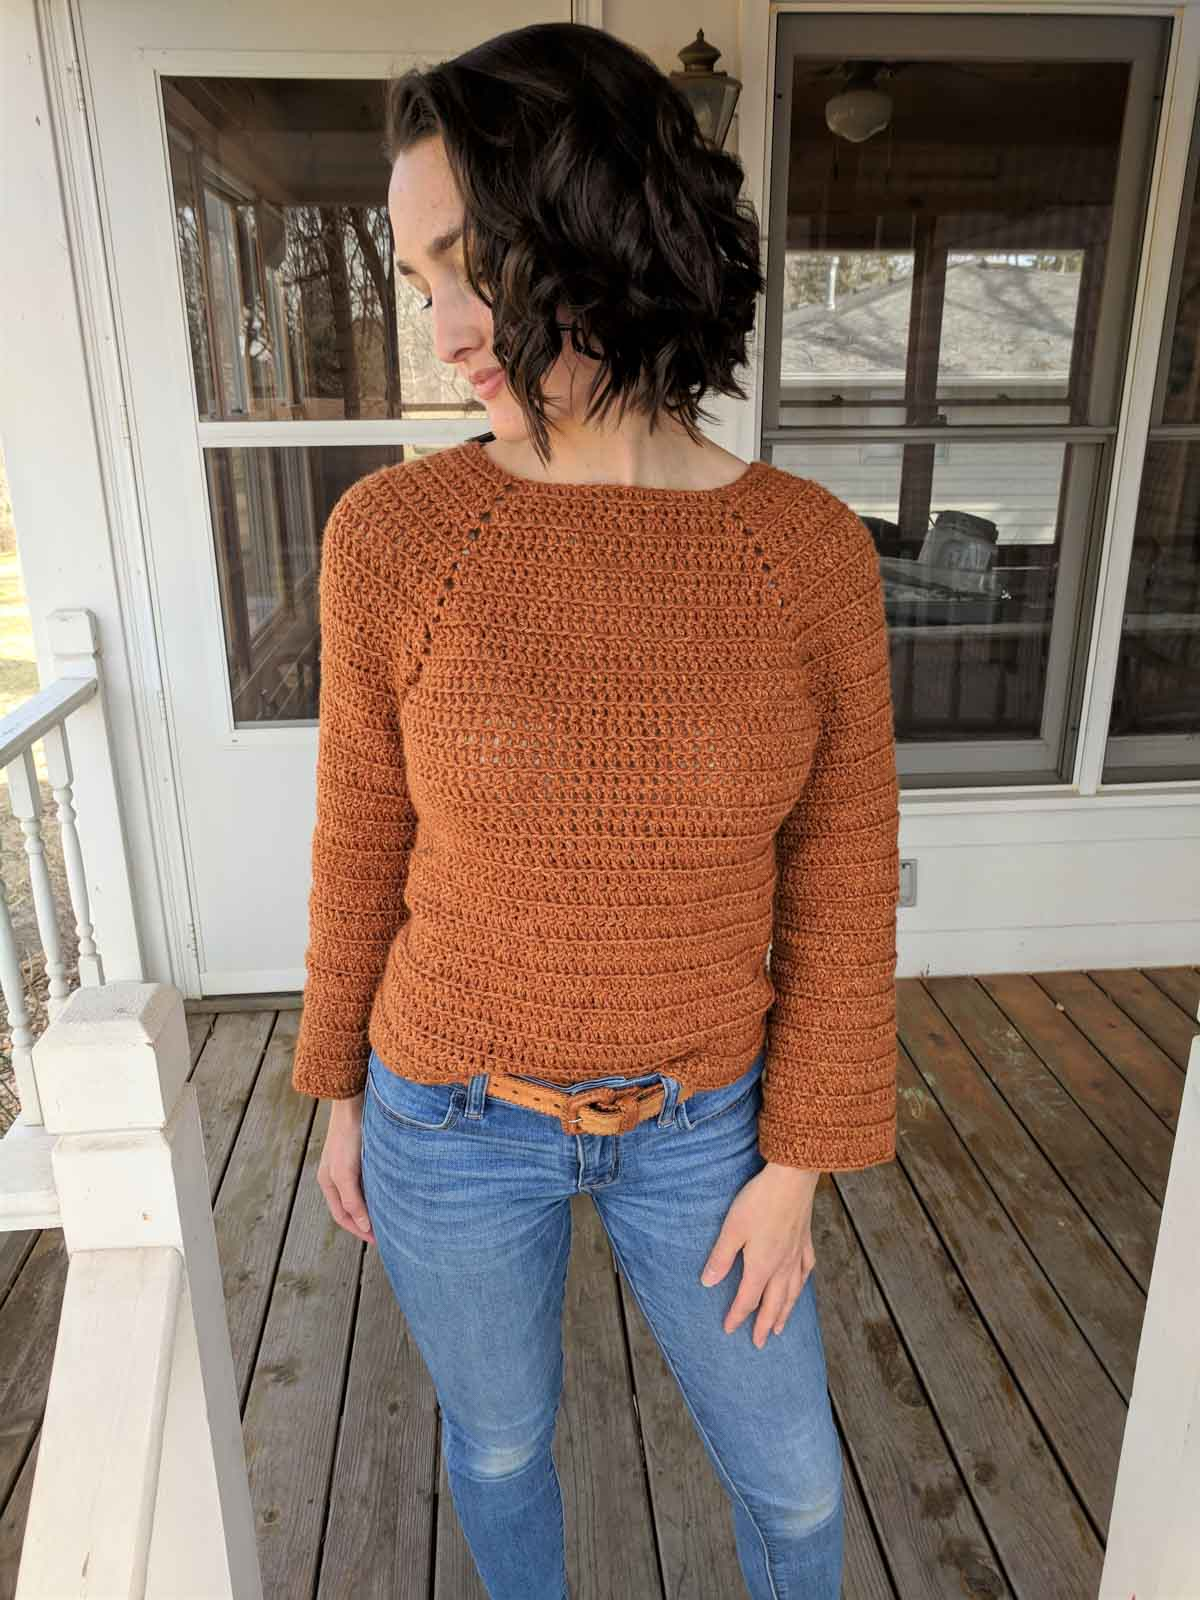 Girl standing outside on front porch of house, wearing blue jeans and a burnt orange crochet sweater.